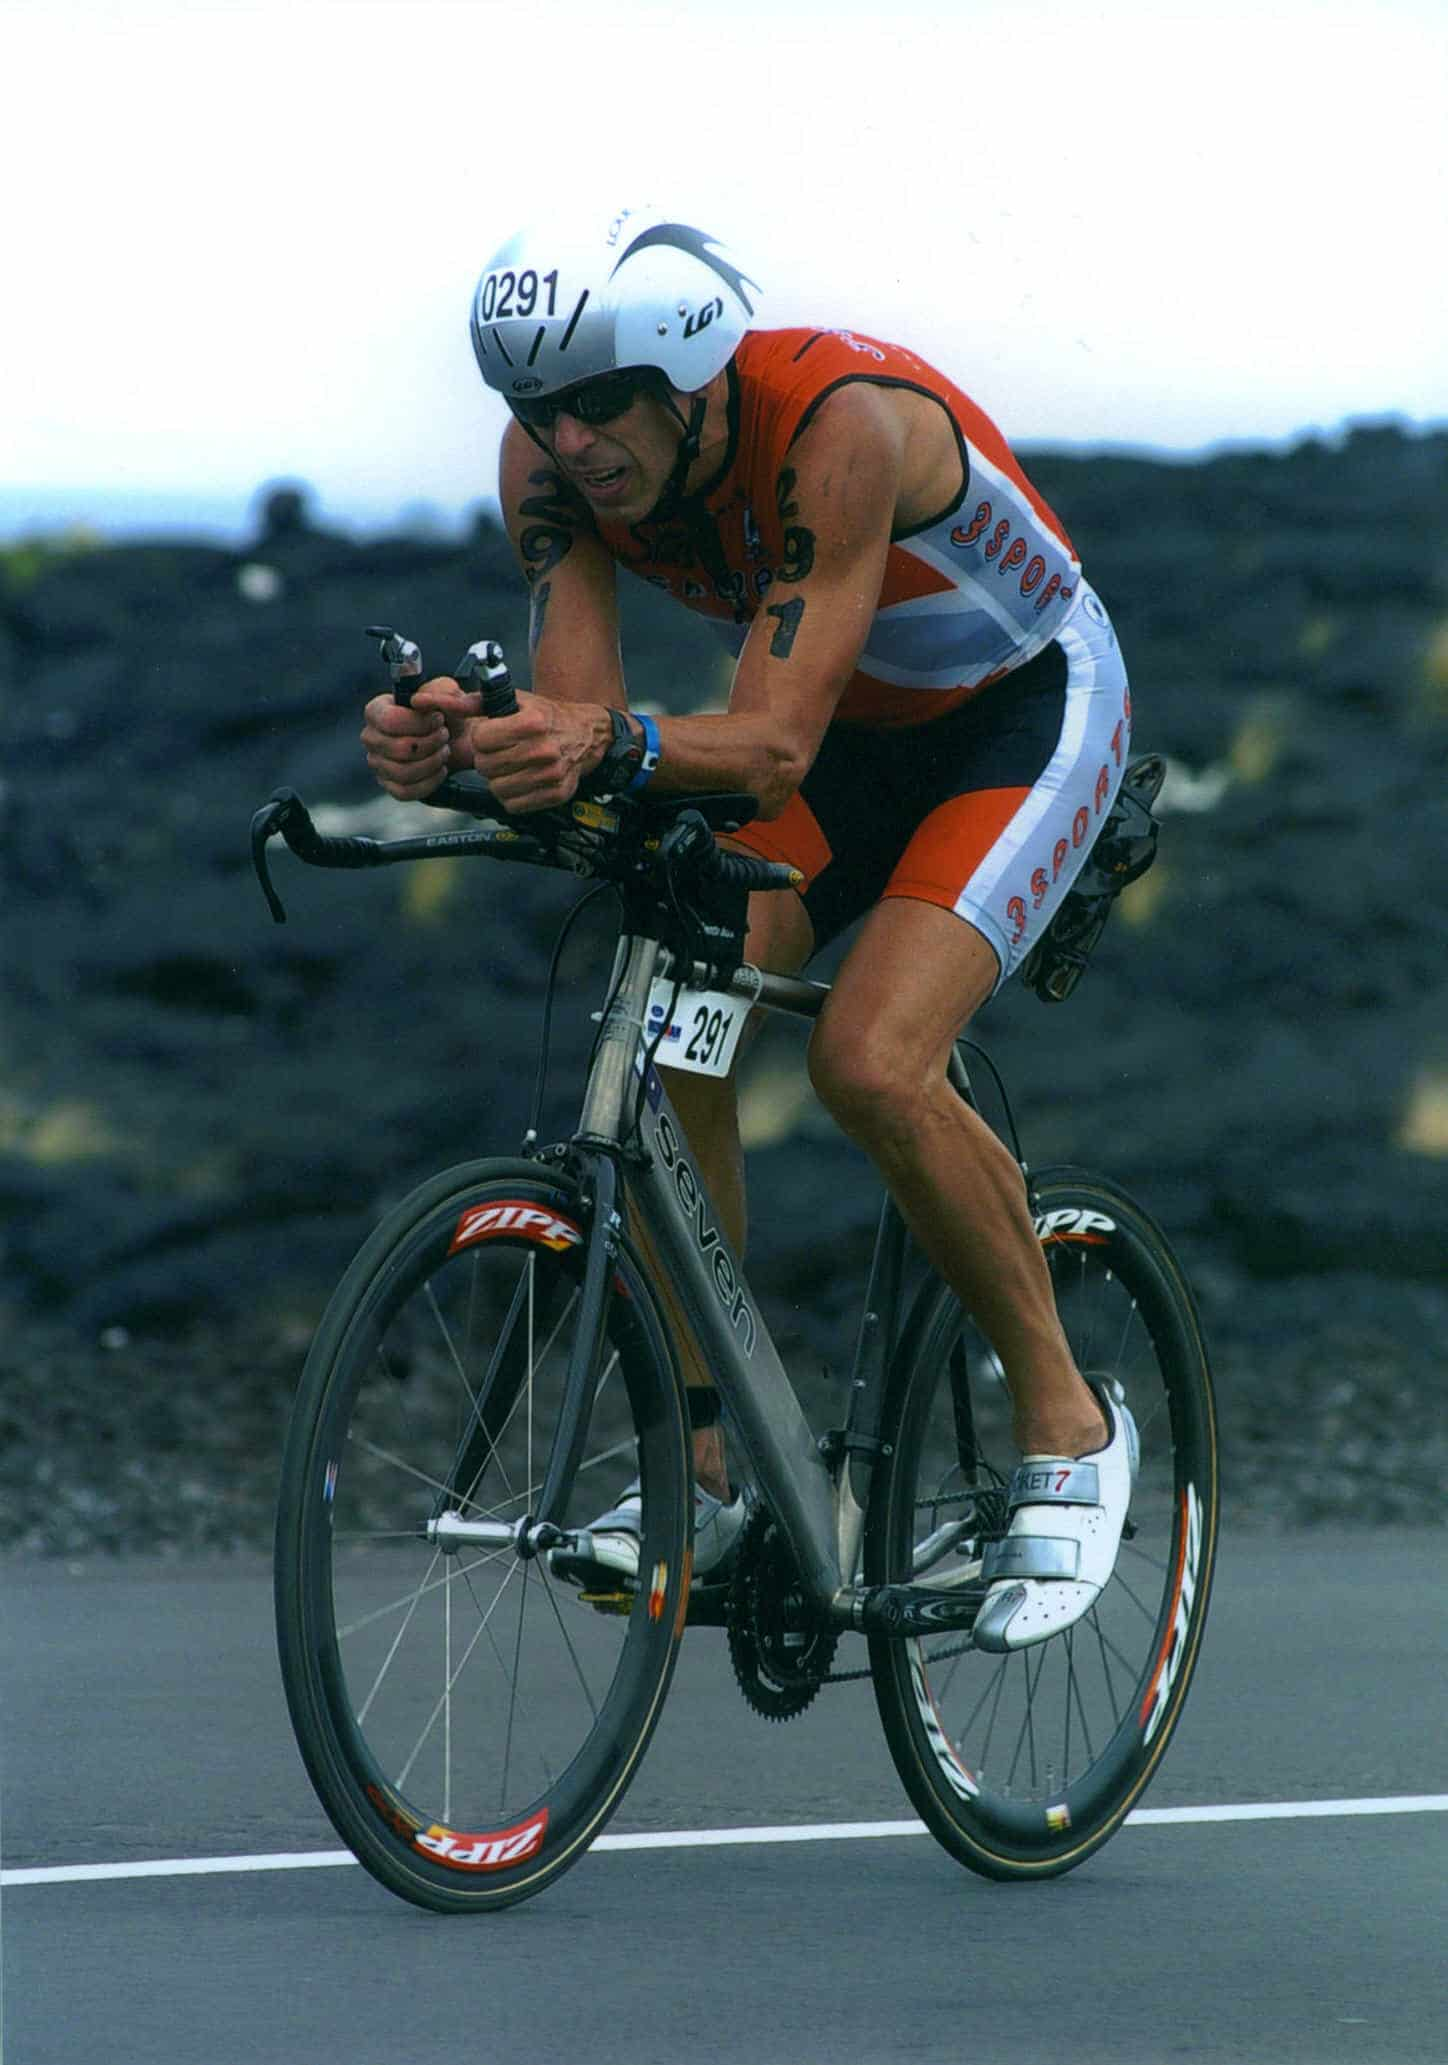 Tom Waldrop, triathlete after age 50, biking at Ironman World Championships, Kona, HI